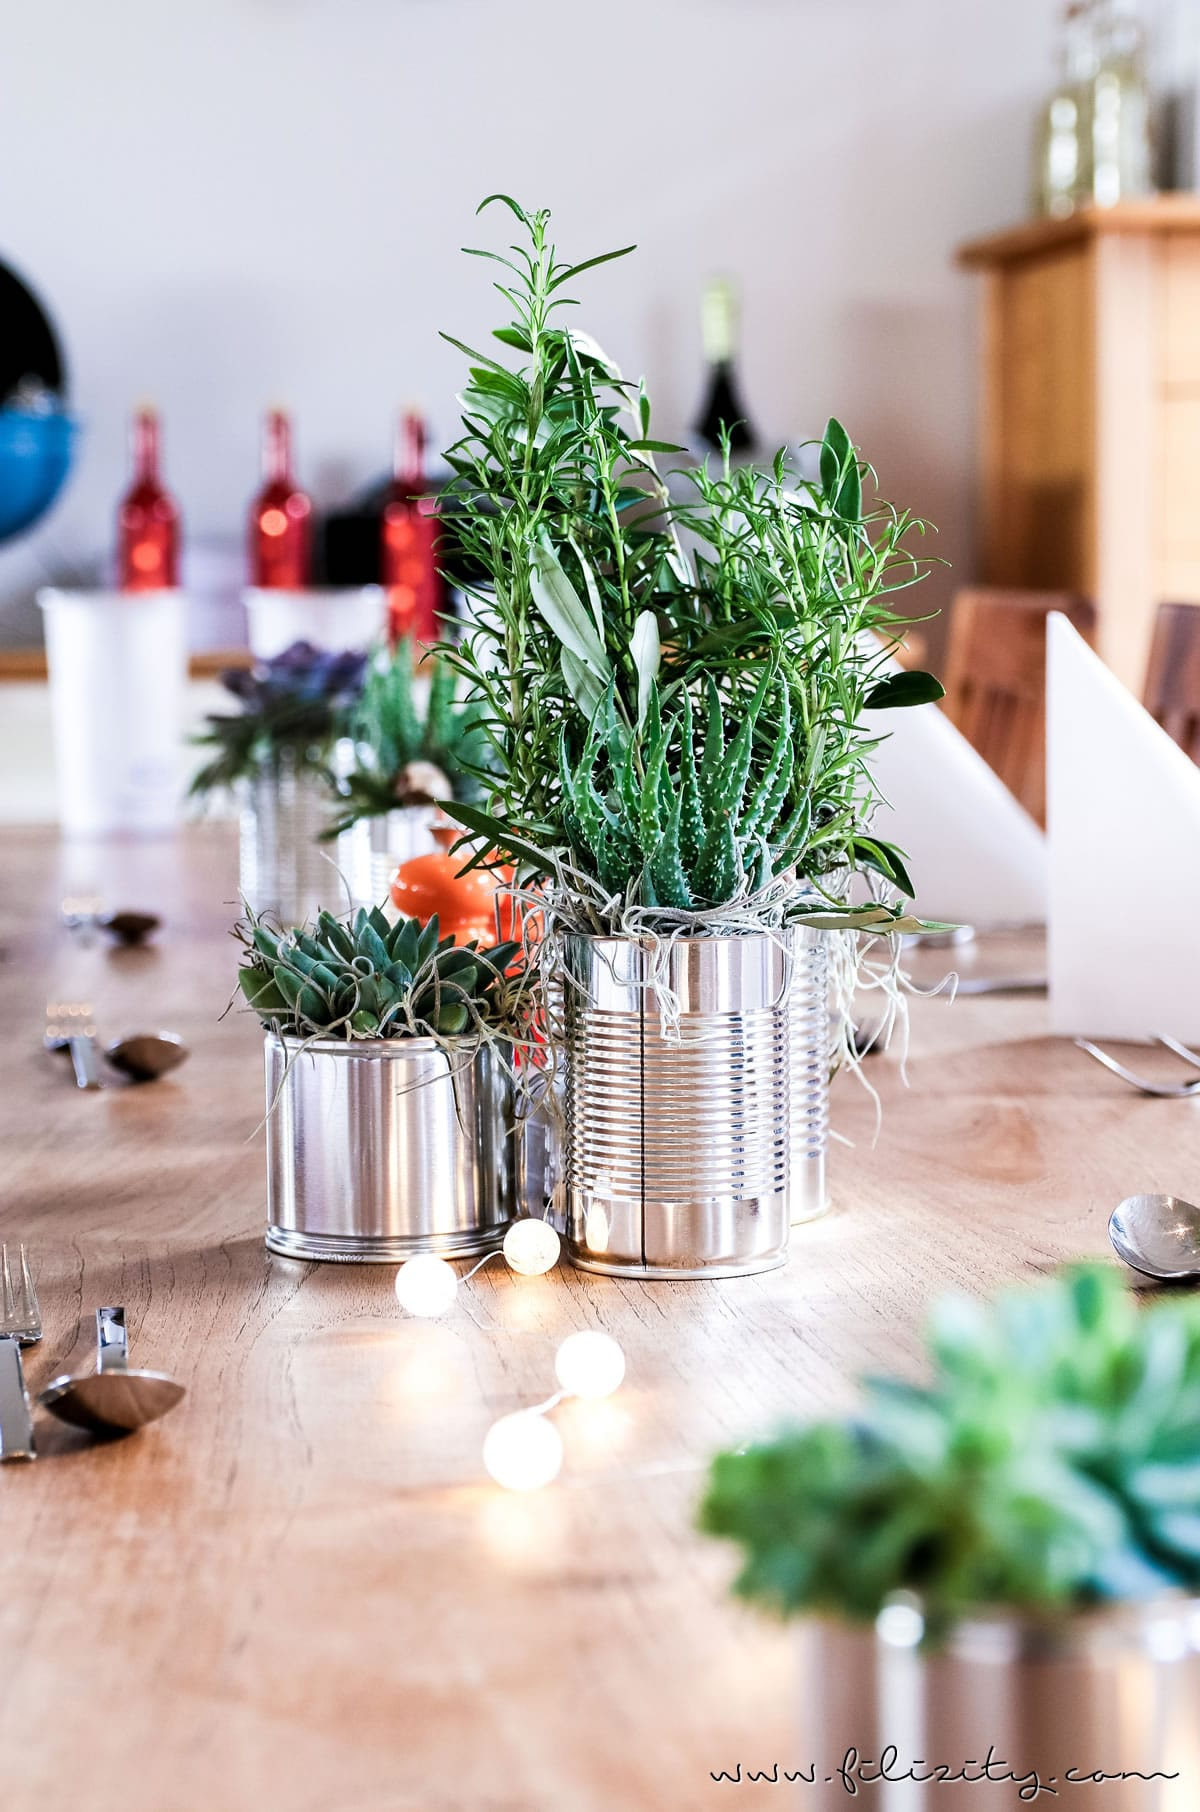 #CANNYCHRISTMAS - Blogger-Event der Initiative Lebensmitteldose | Filizity.com | Lifestyle-Blog aus dem Rheinland